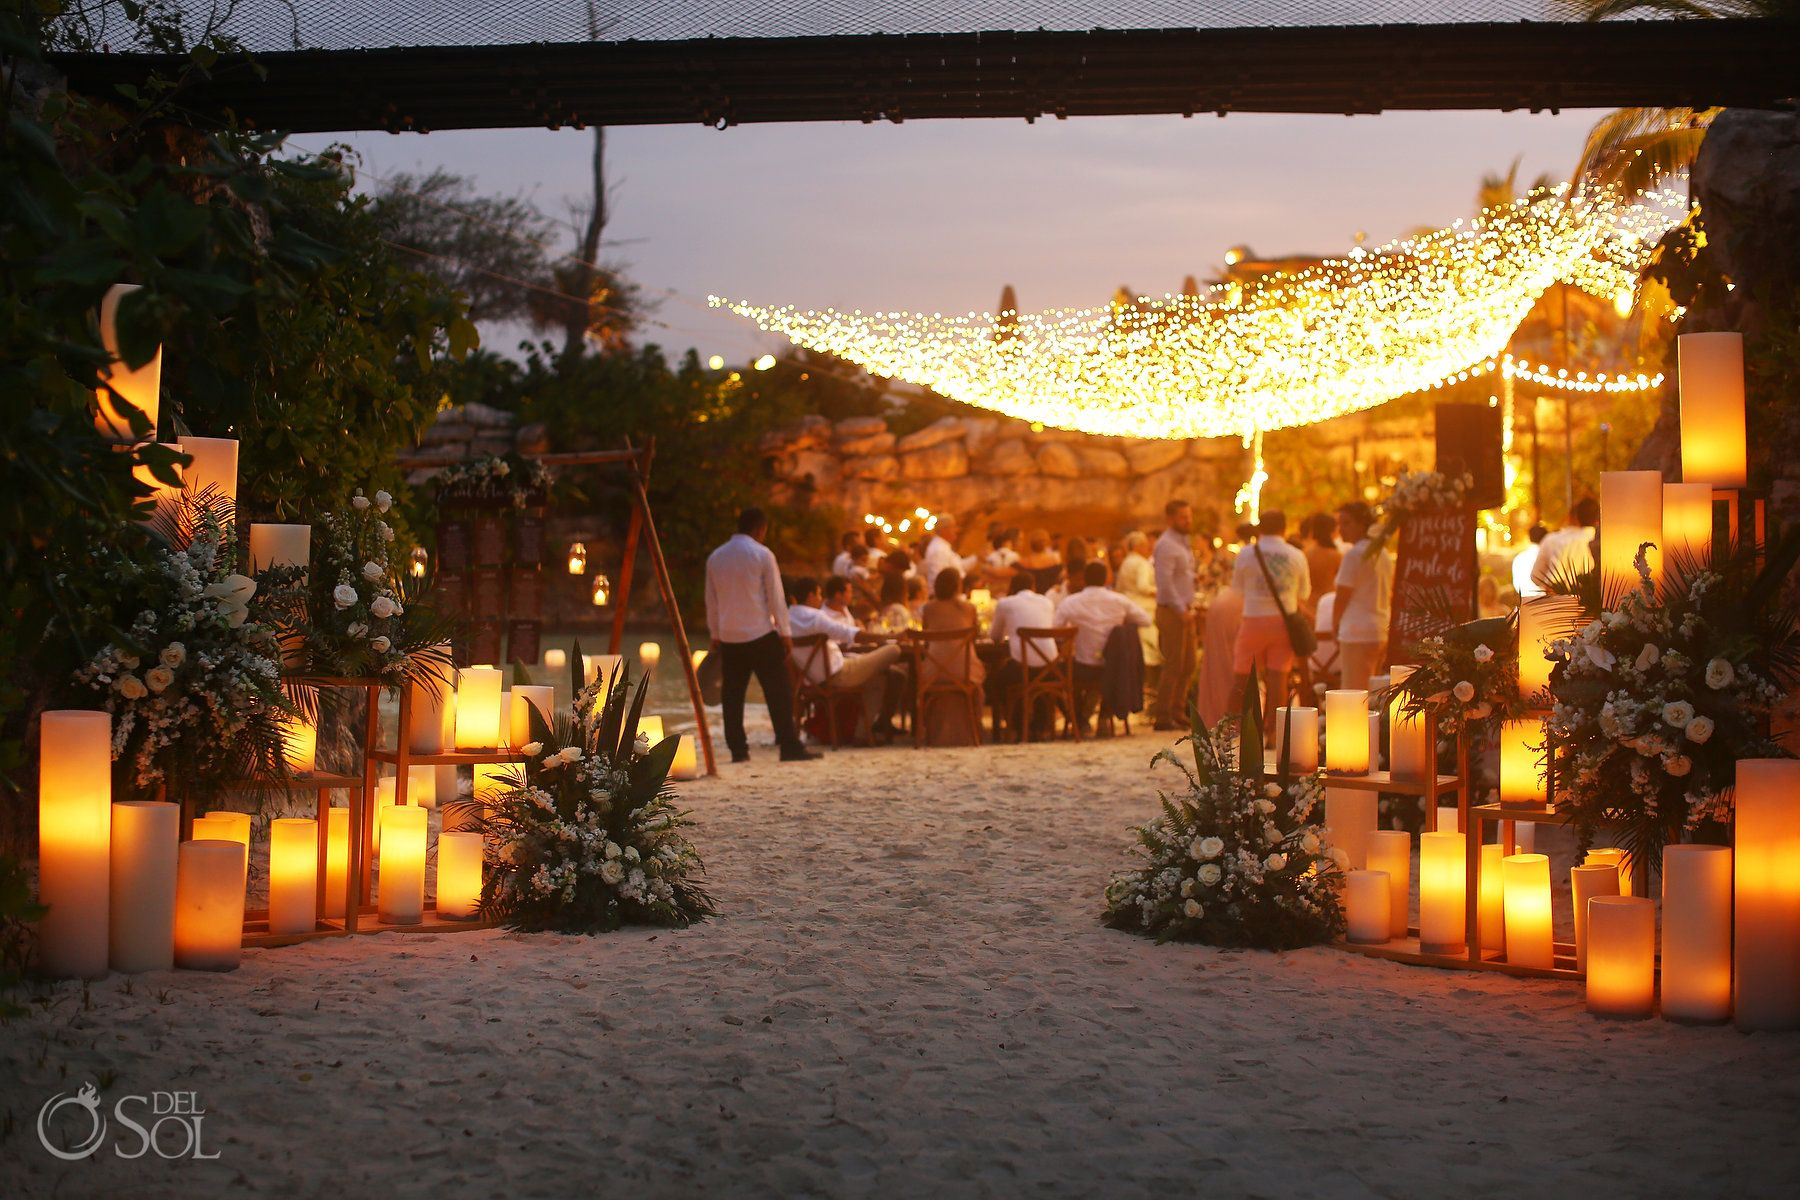 Hotel Xcaret Mexico Weddings With Images Mexico Wedding